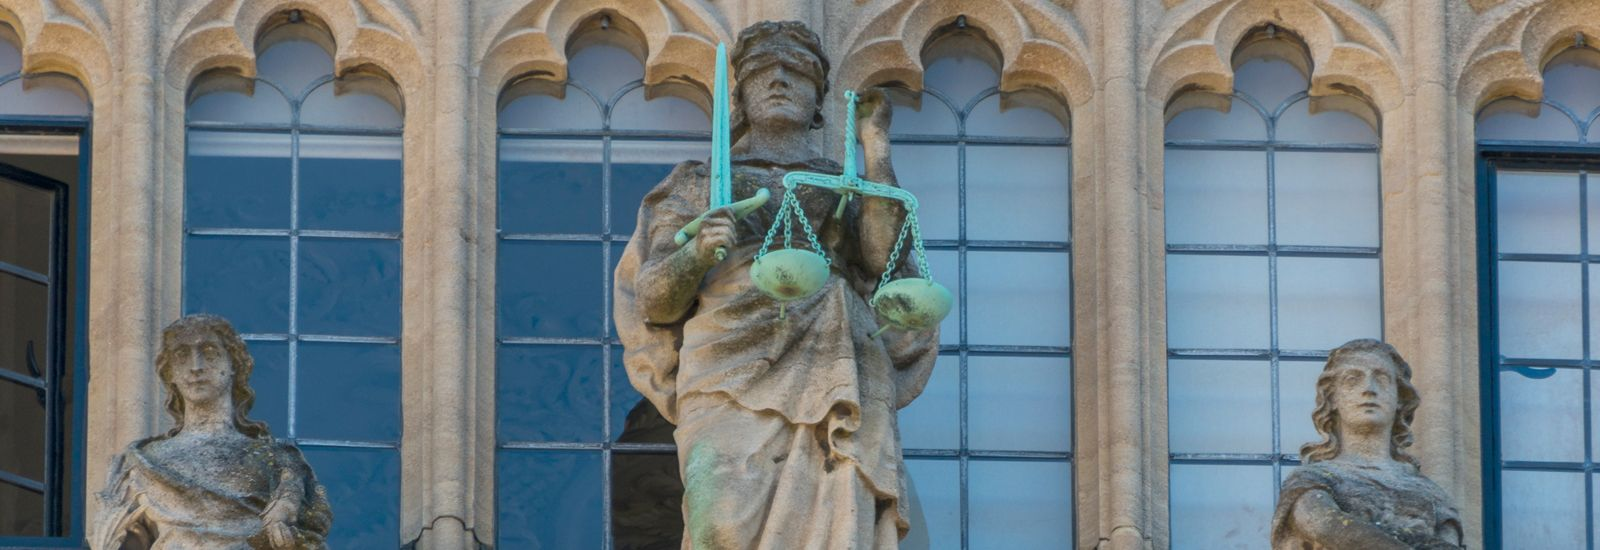 Detail of the façade of the Bodleian Library in Oxford showing Justice with her scales and blindfold